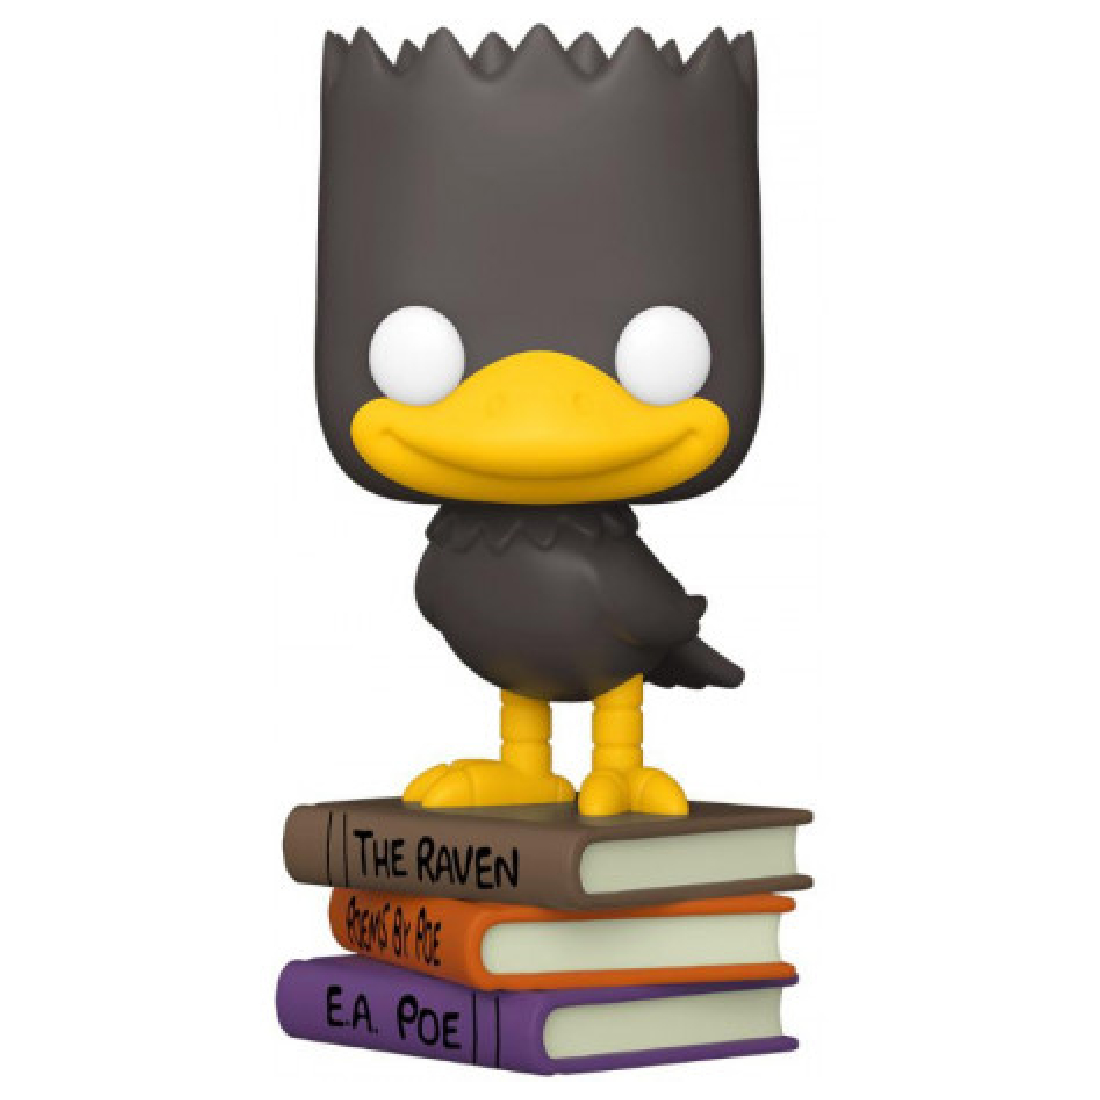 Funko Pop! Television The Simpsons: Theehouse of Horror 1032 The Raven Bart